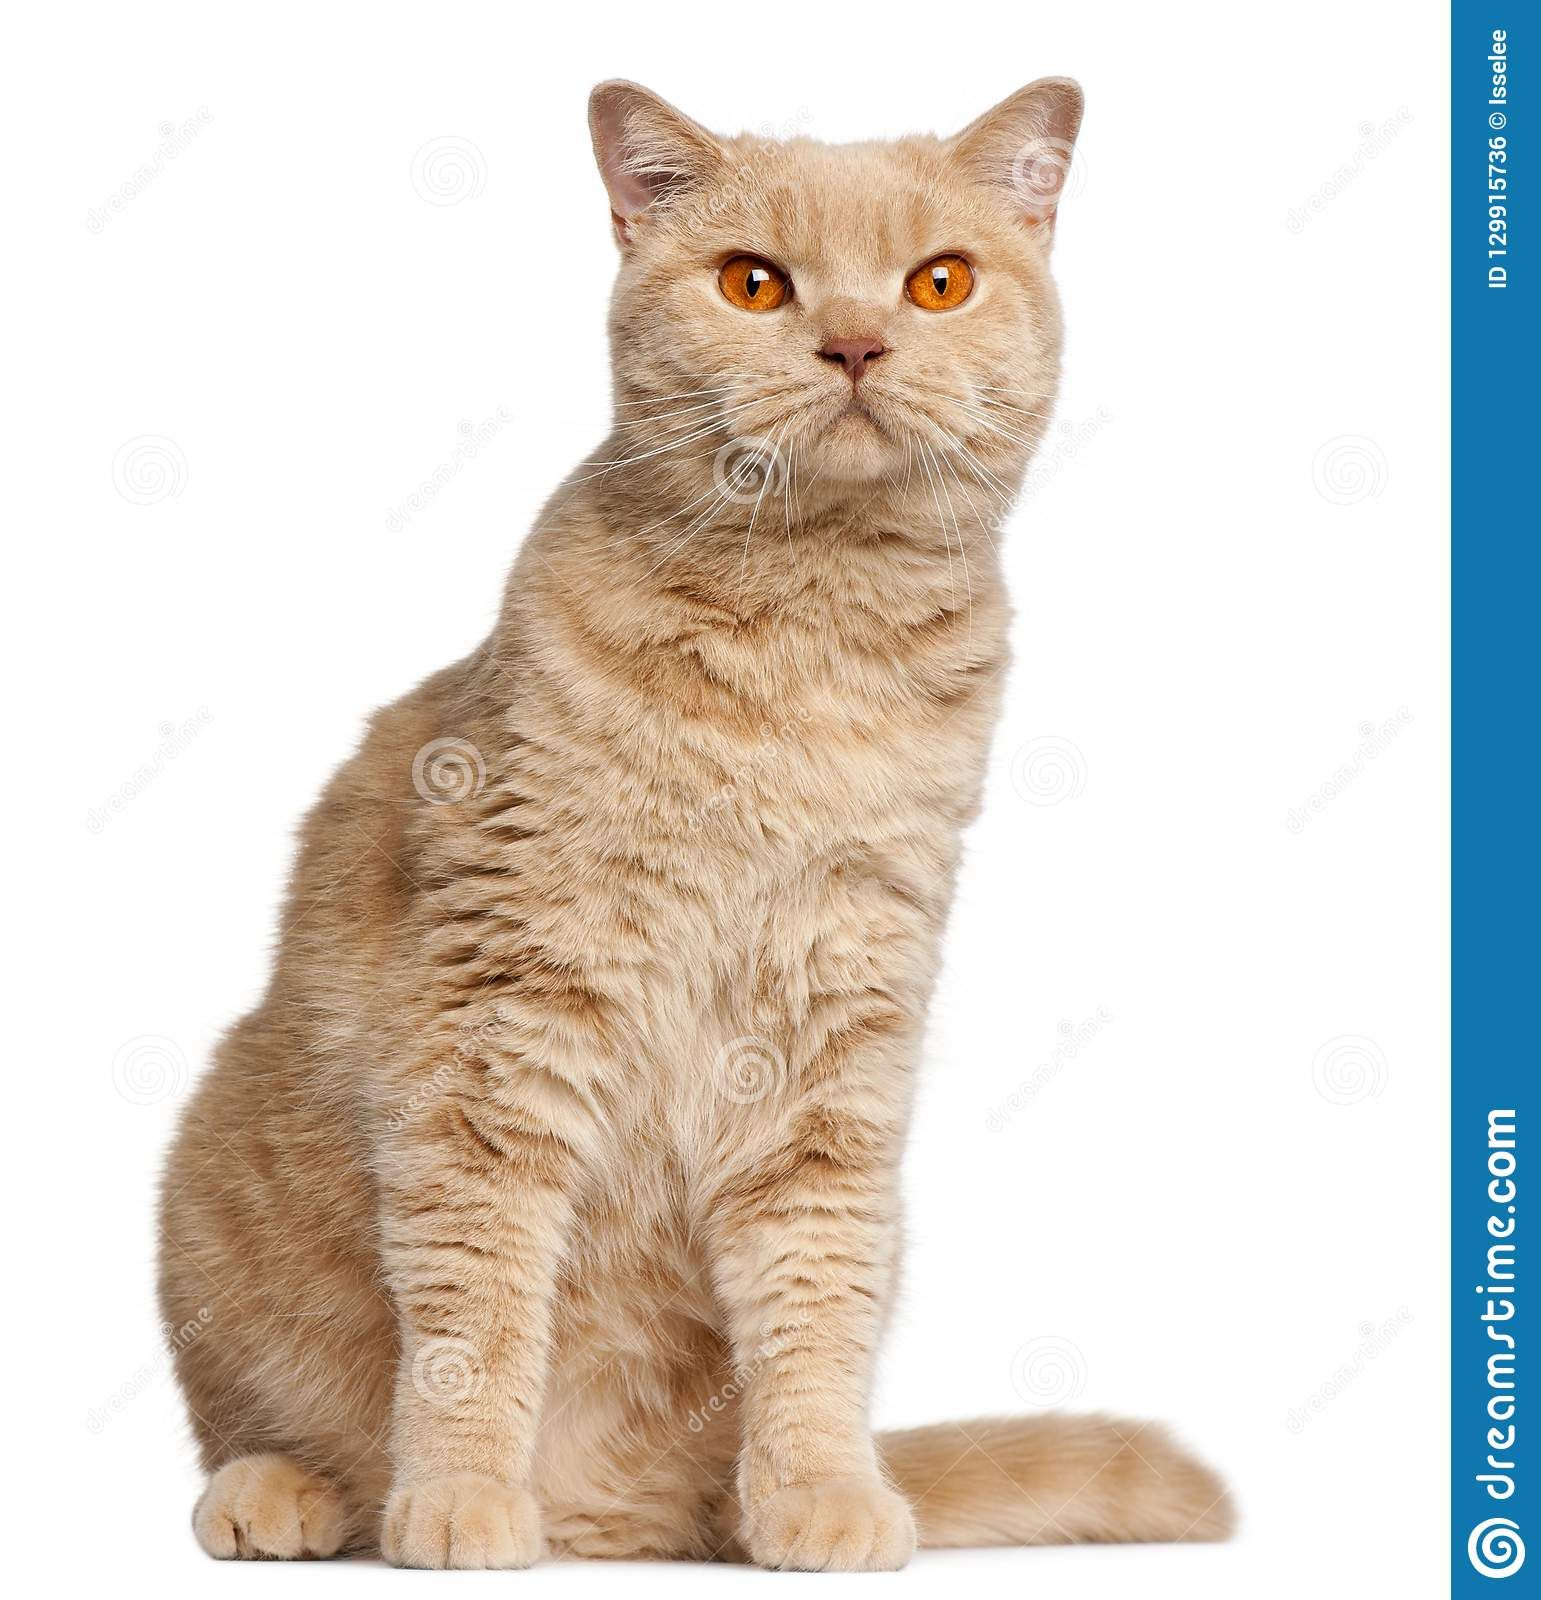 Ginger British Shorthair Cat 1 Year Old In 2020 British Shorthair Cats British Shorthair Cat Years